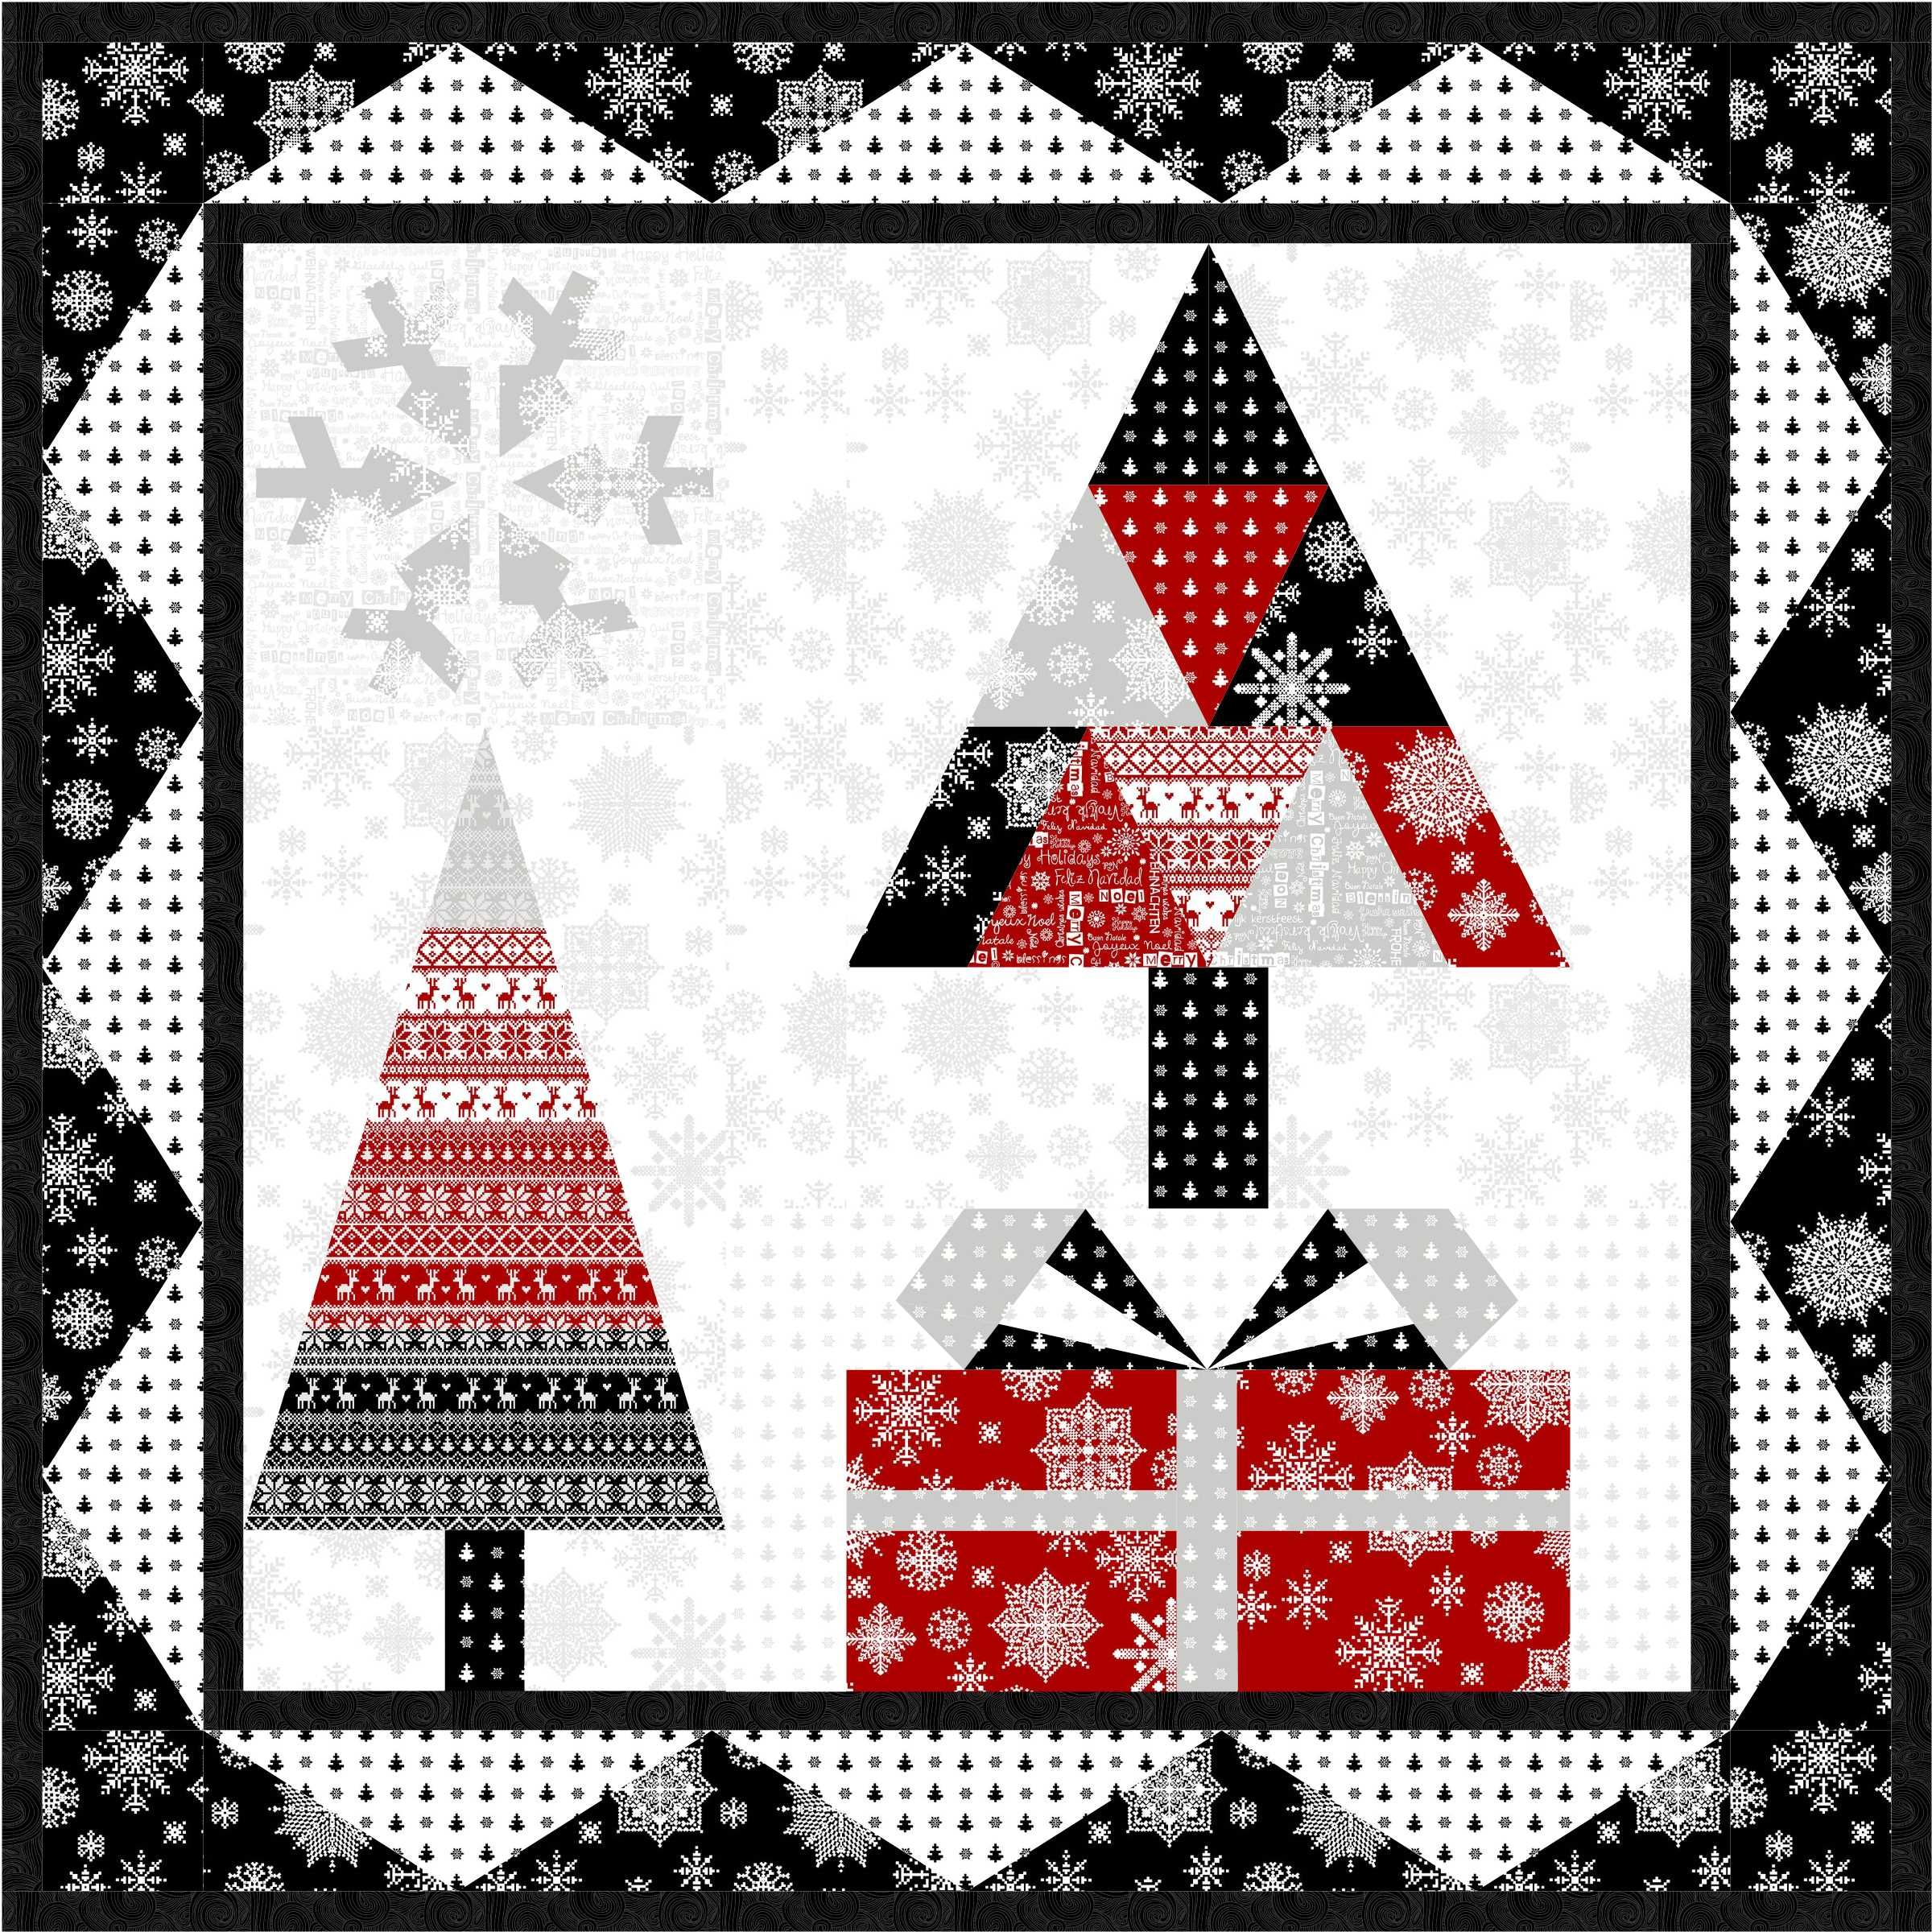 Christmas Tree Table Runner Quilt Pattern: Now Available As A Free Download! Product: Winter